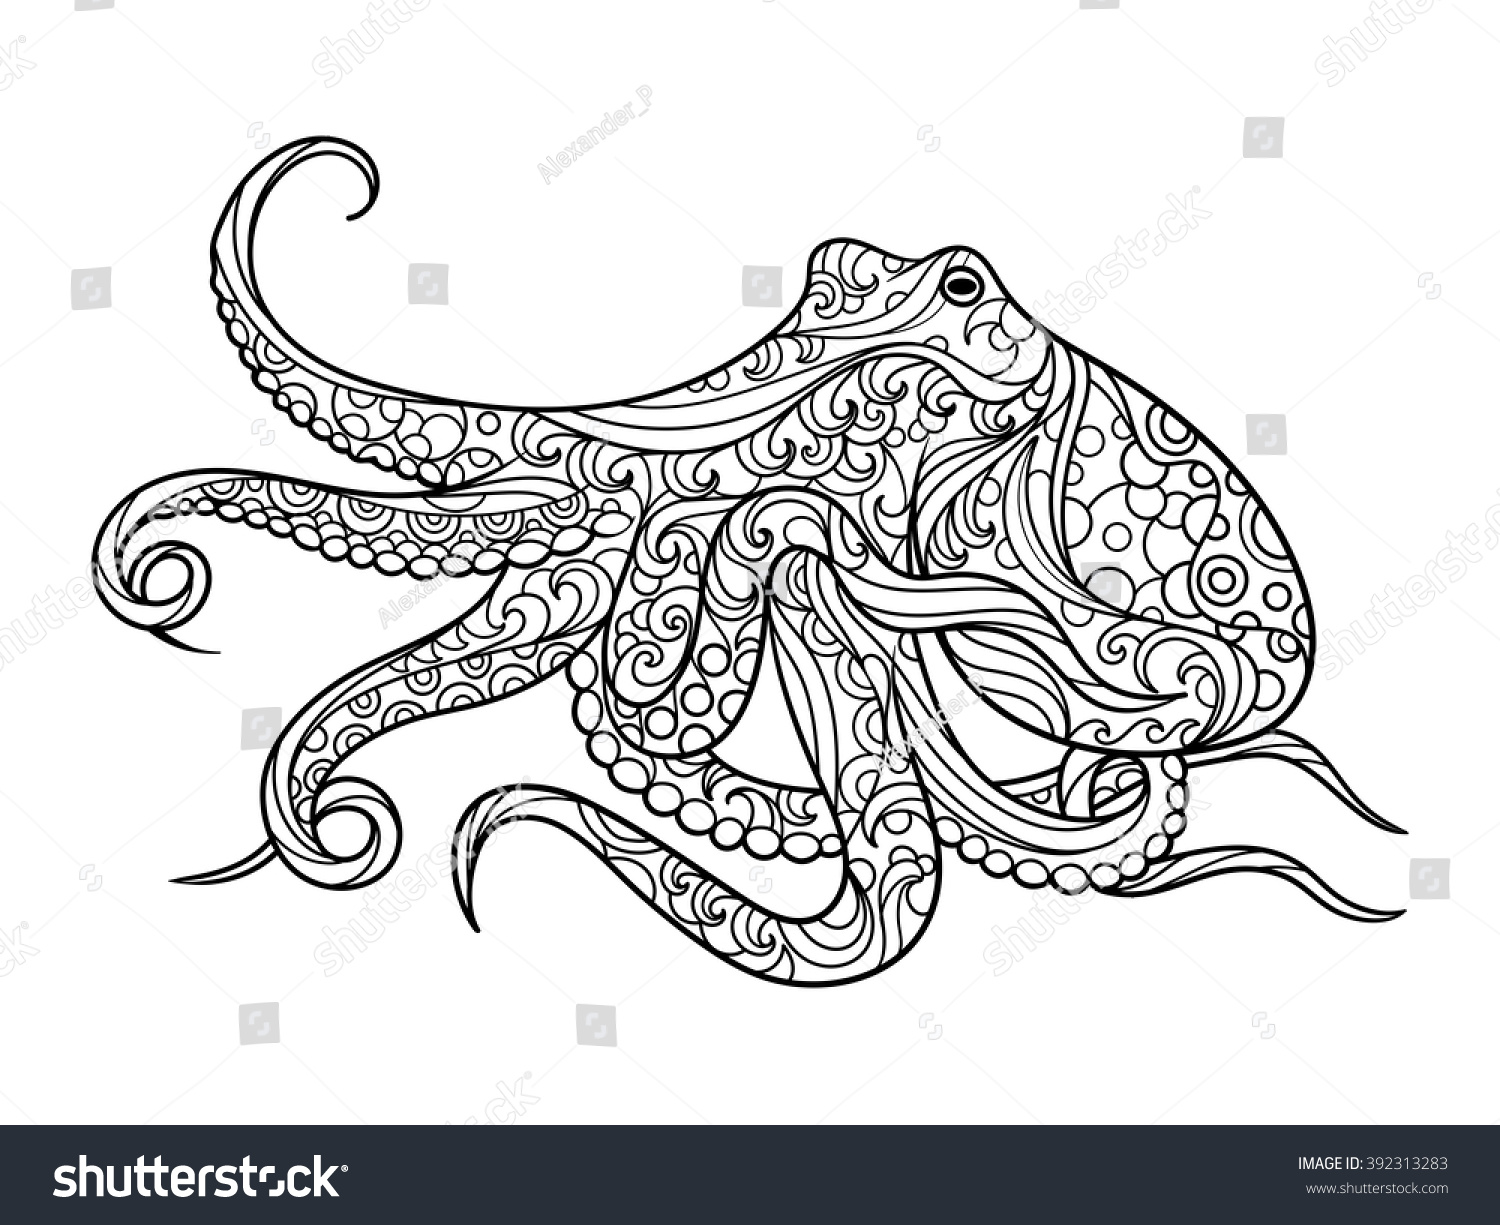 Octopus Sea Animal Coloring Book For Adults Vector Illustration Anti Stress Adult Zentangle Style Black And White Lines